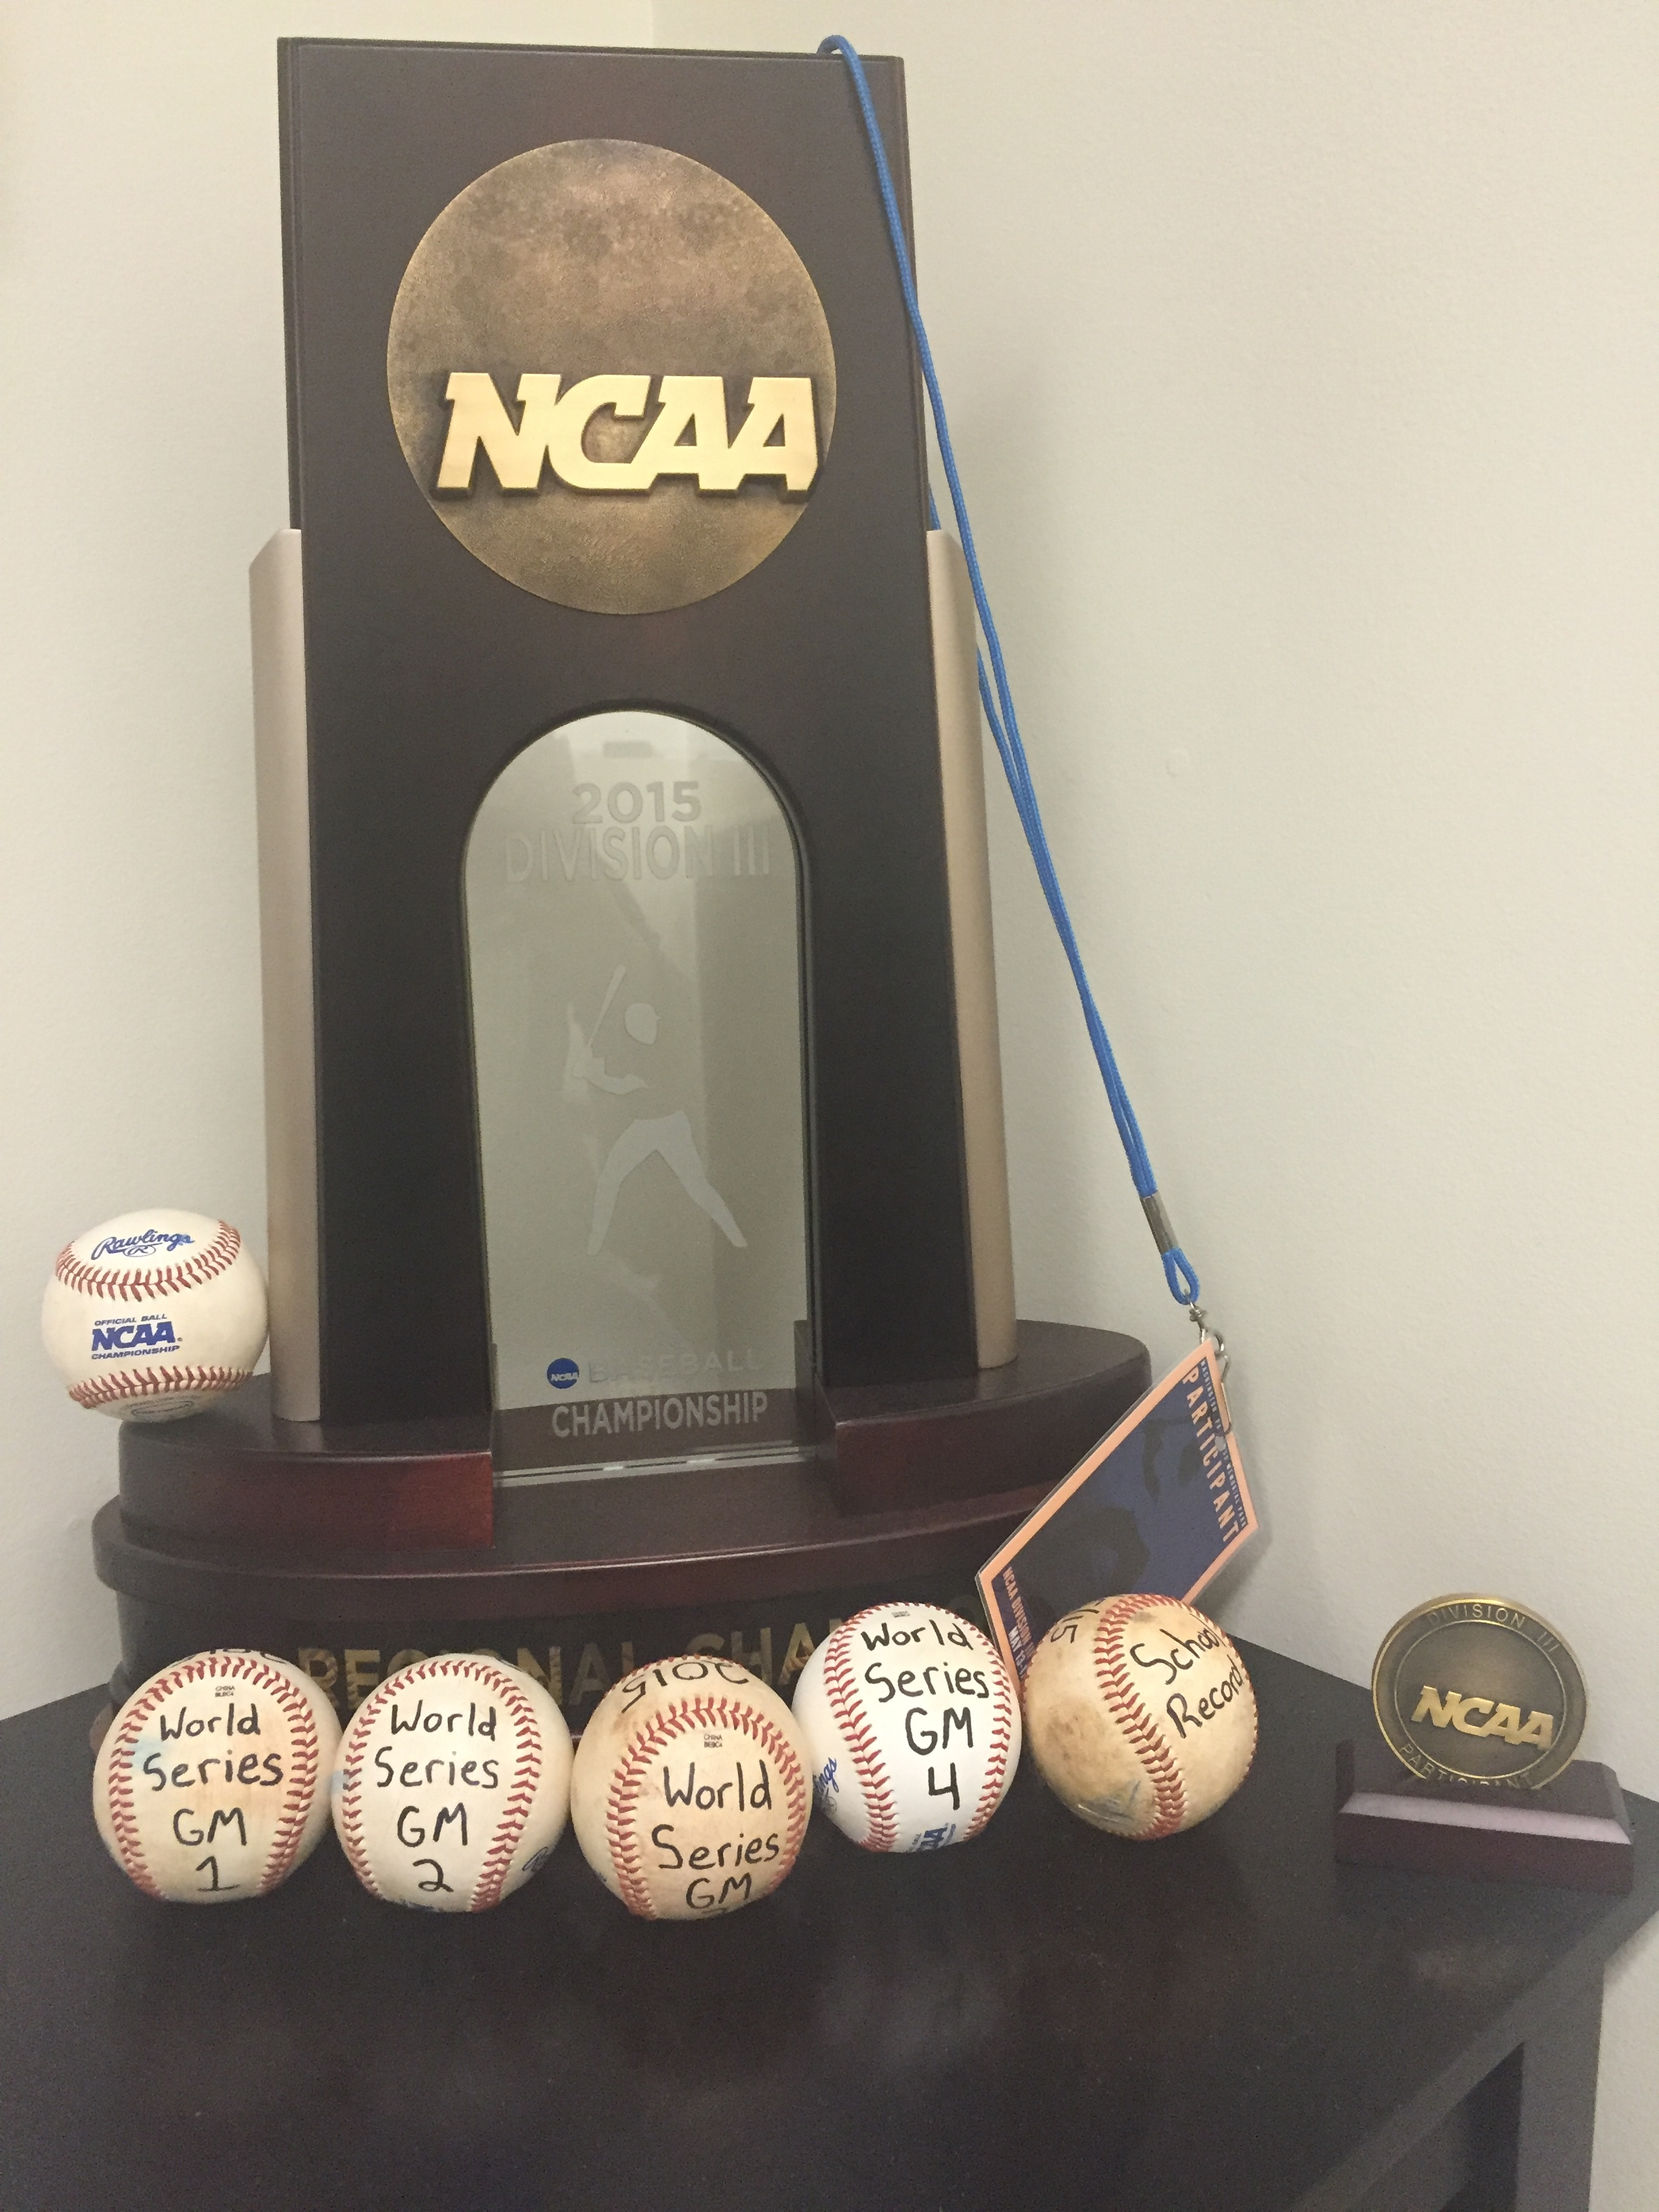 Baseball 2015 D3 NCAA Championship Trophy. Taken by Mia Williams.